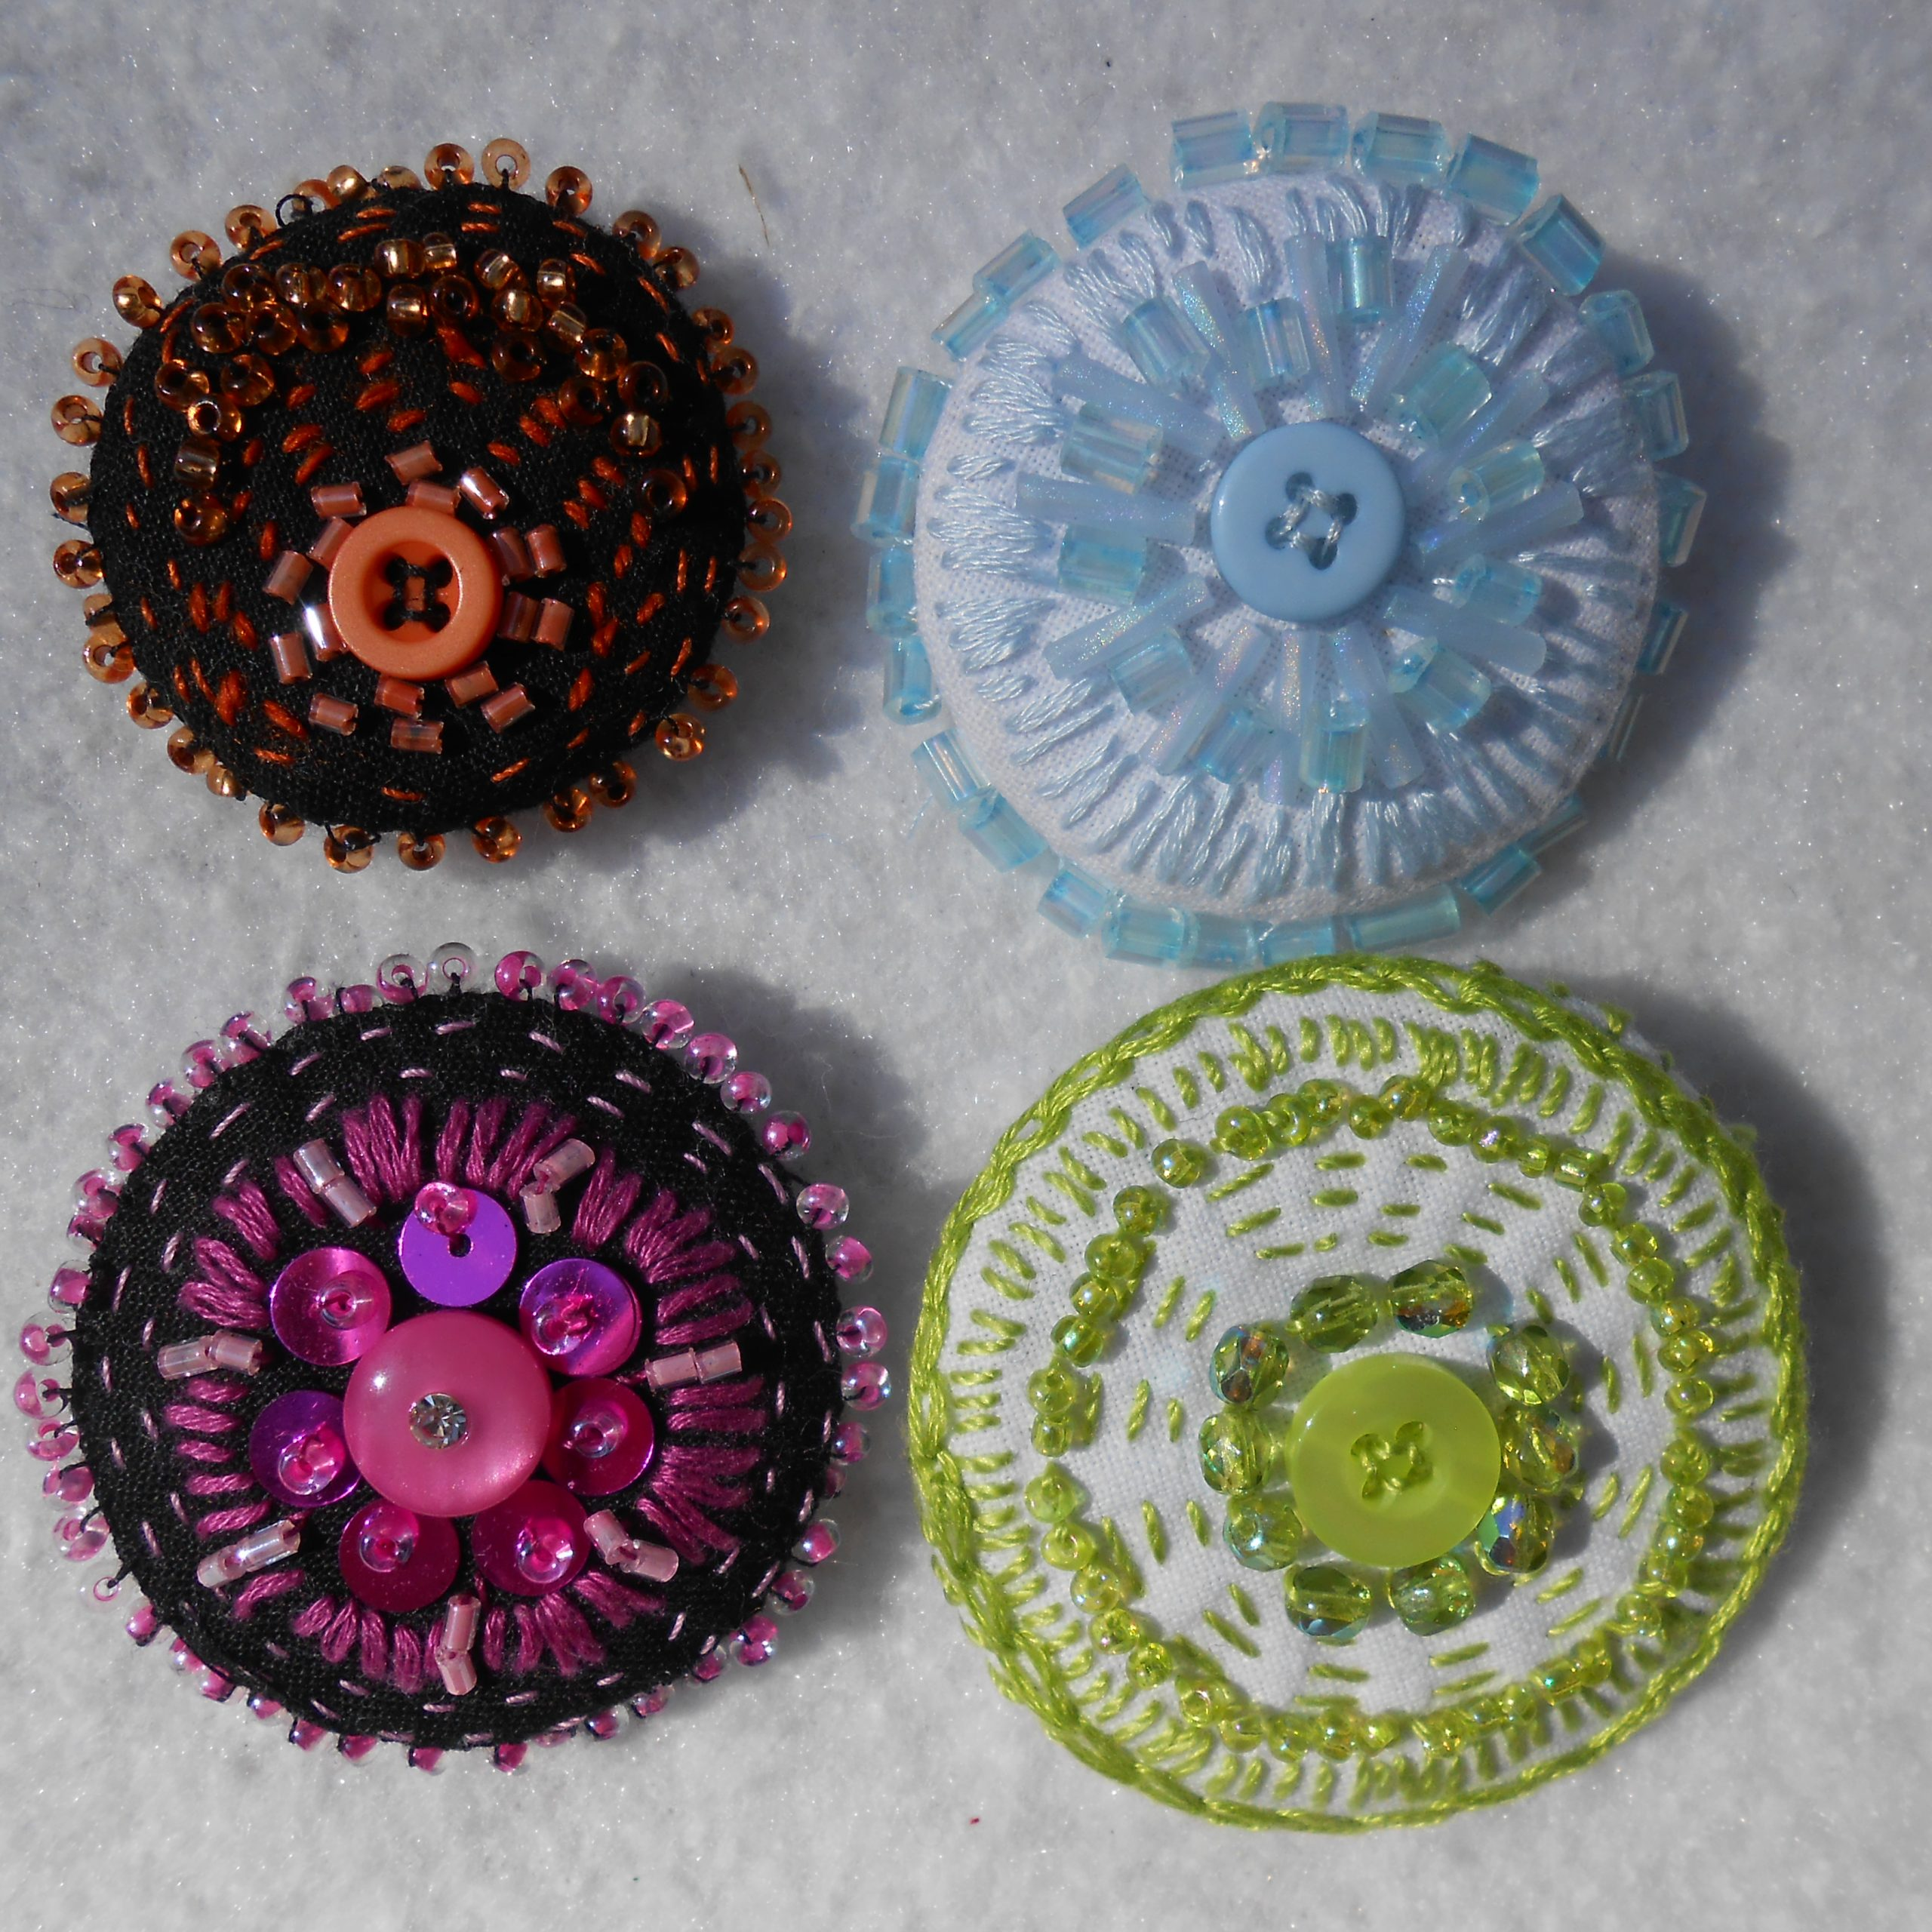 Photo 7 - Four versions of brooches with beaded or embroidered edges.